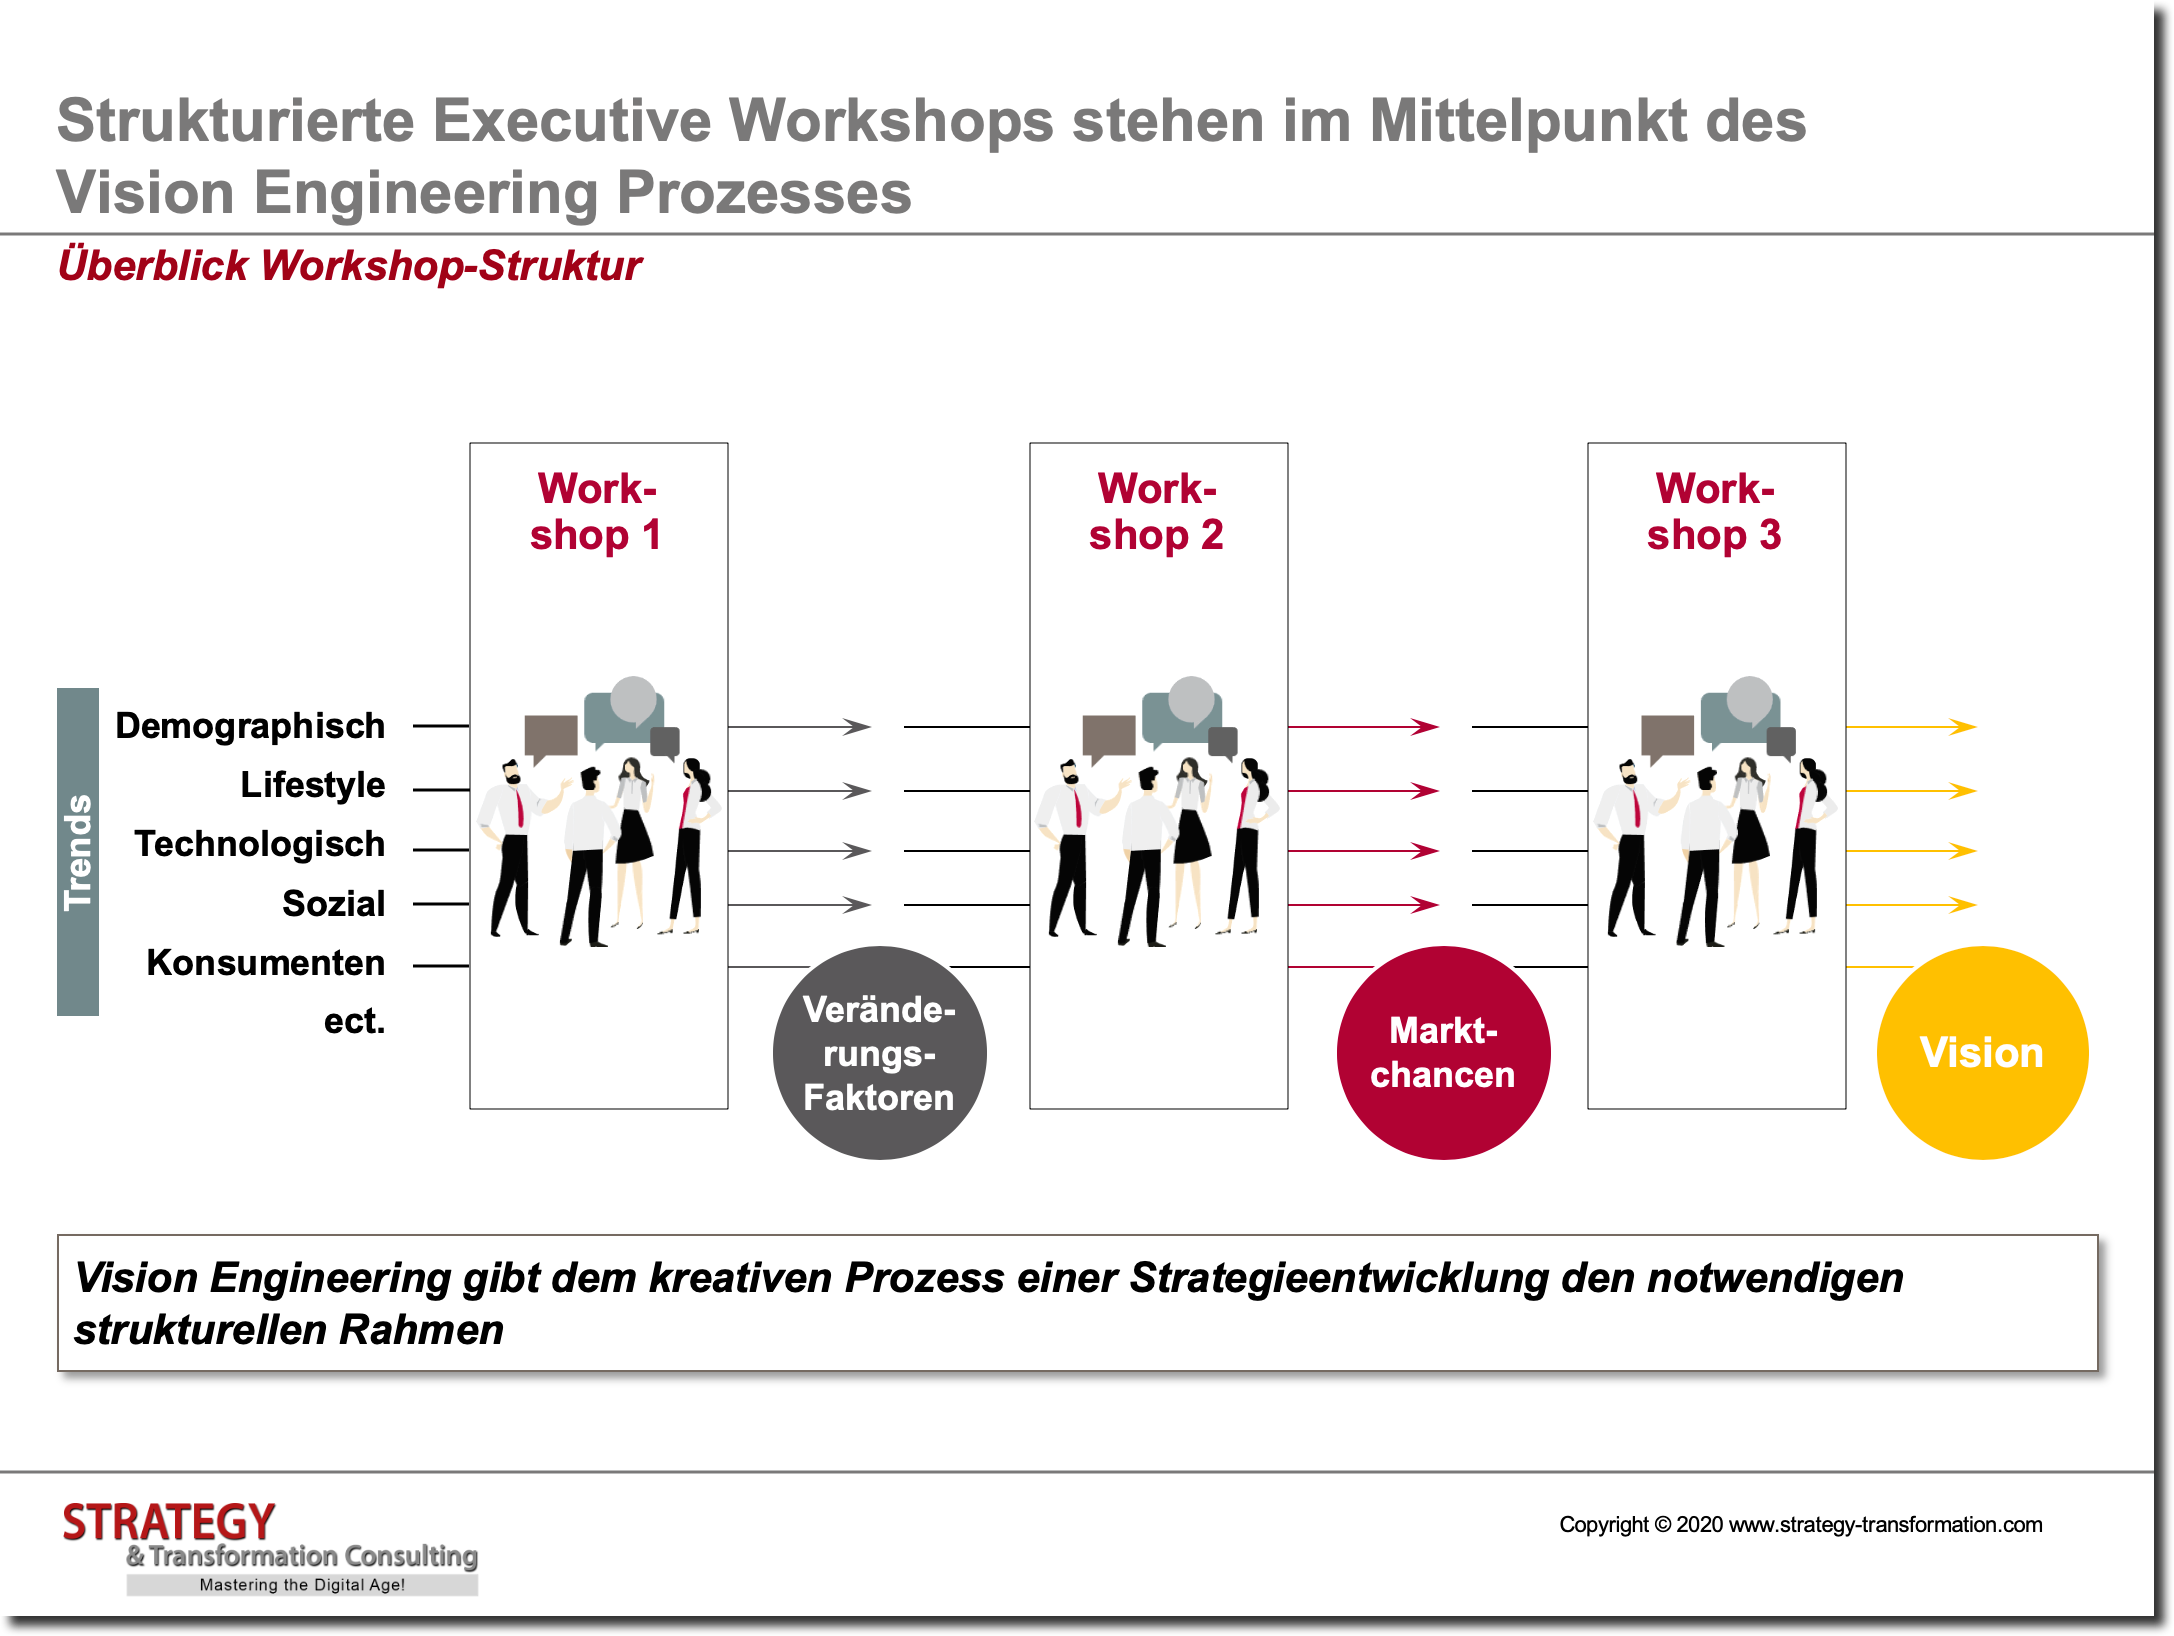 Überblick Workshop-Struktur